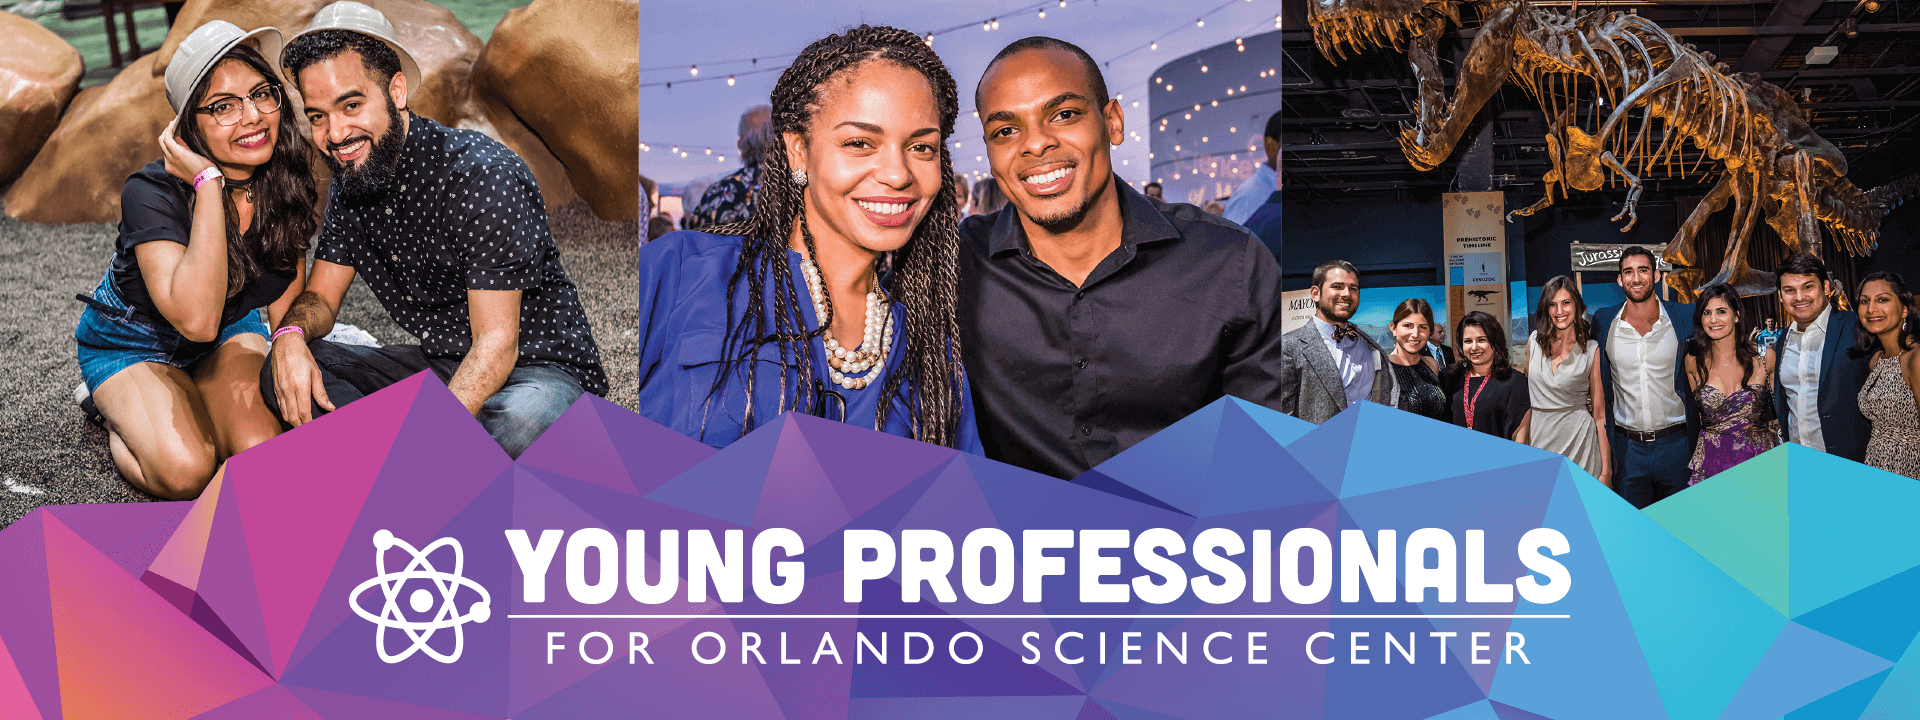 Collage of photos of young adults enjoying Orlando Science Center experiences through Young Professionals for OSC events